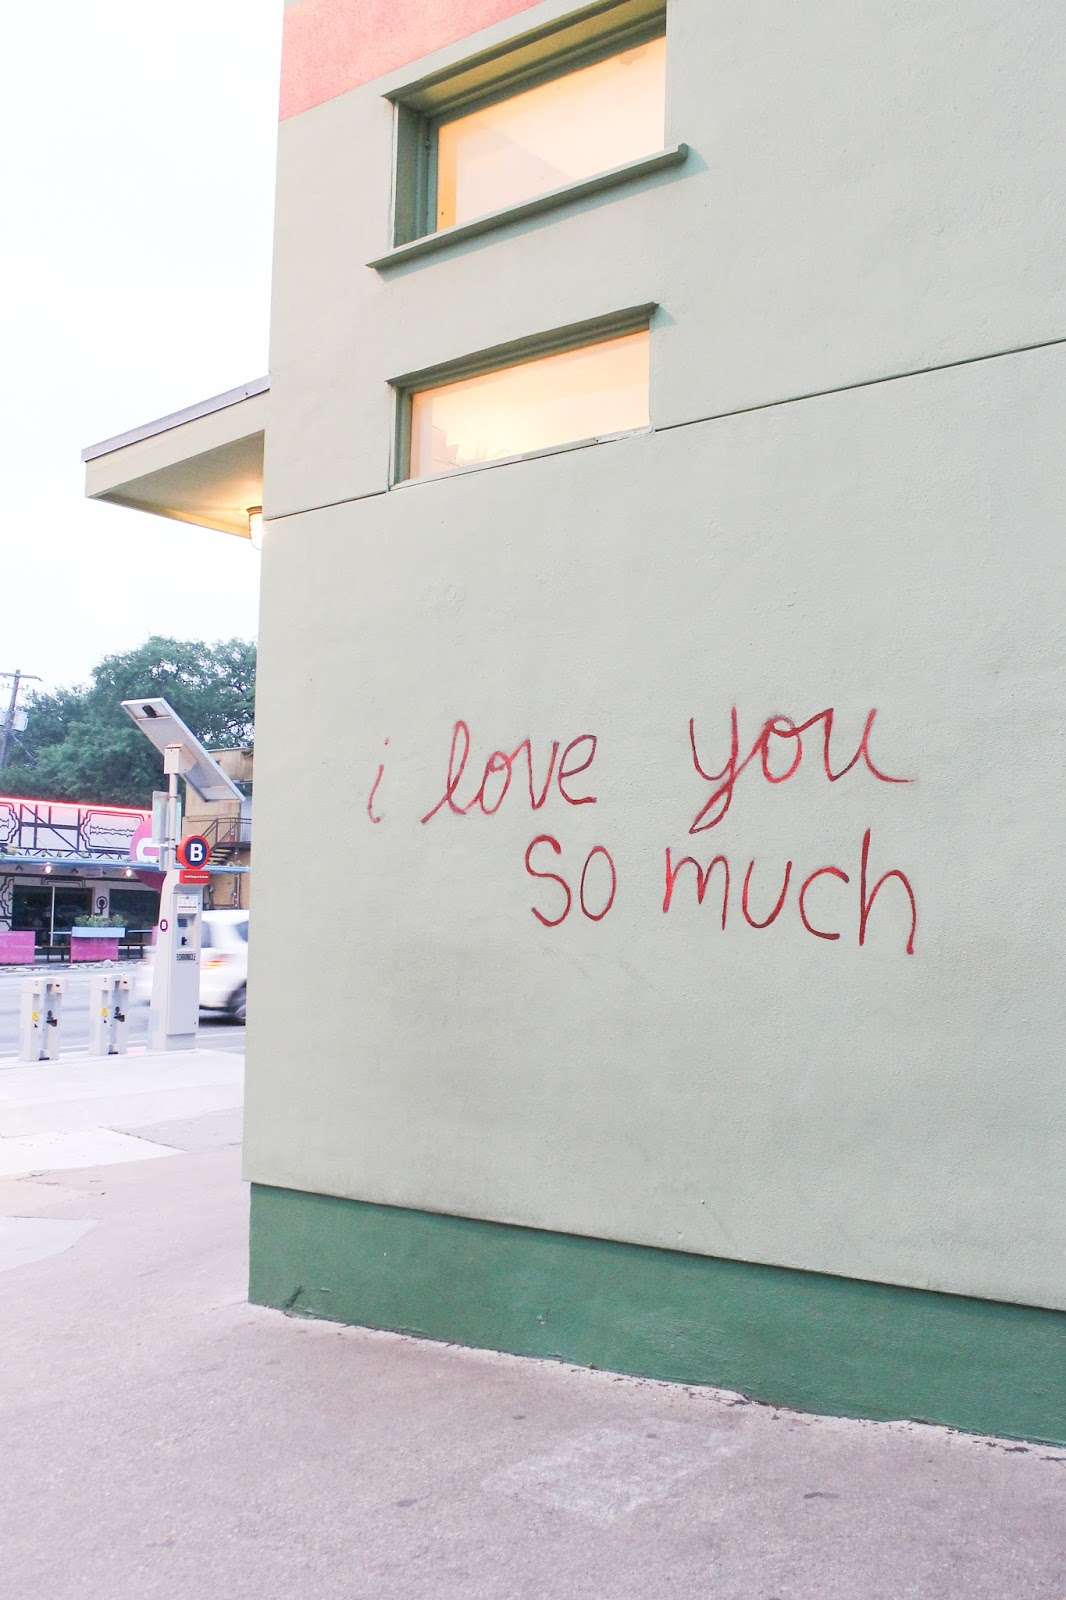 I love you so much wall in Austin, TX SoCo | www.thebellainsider.com